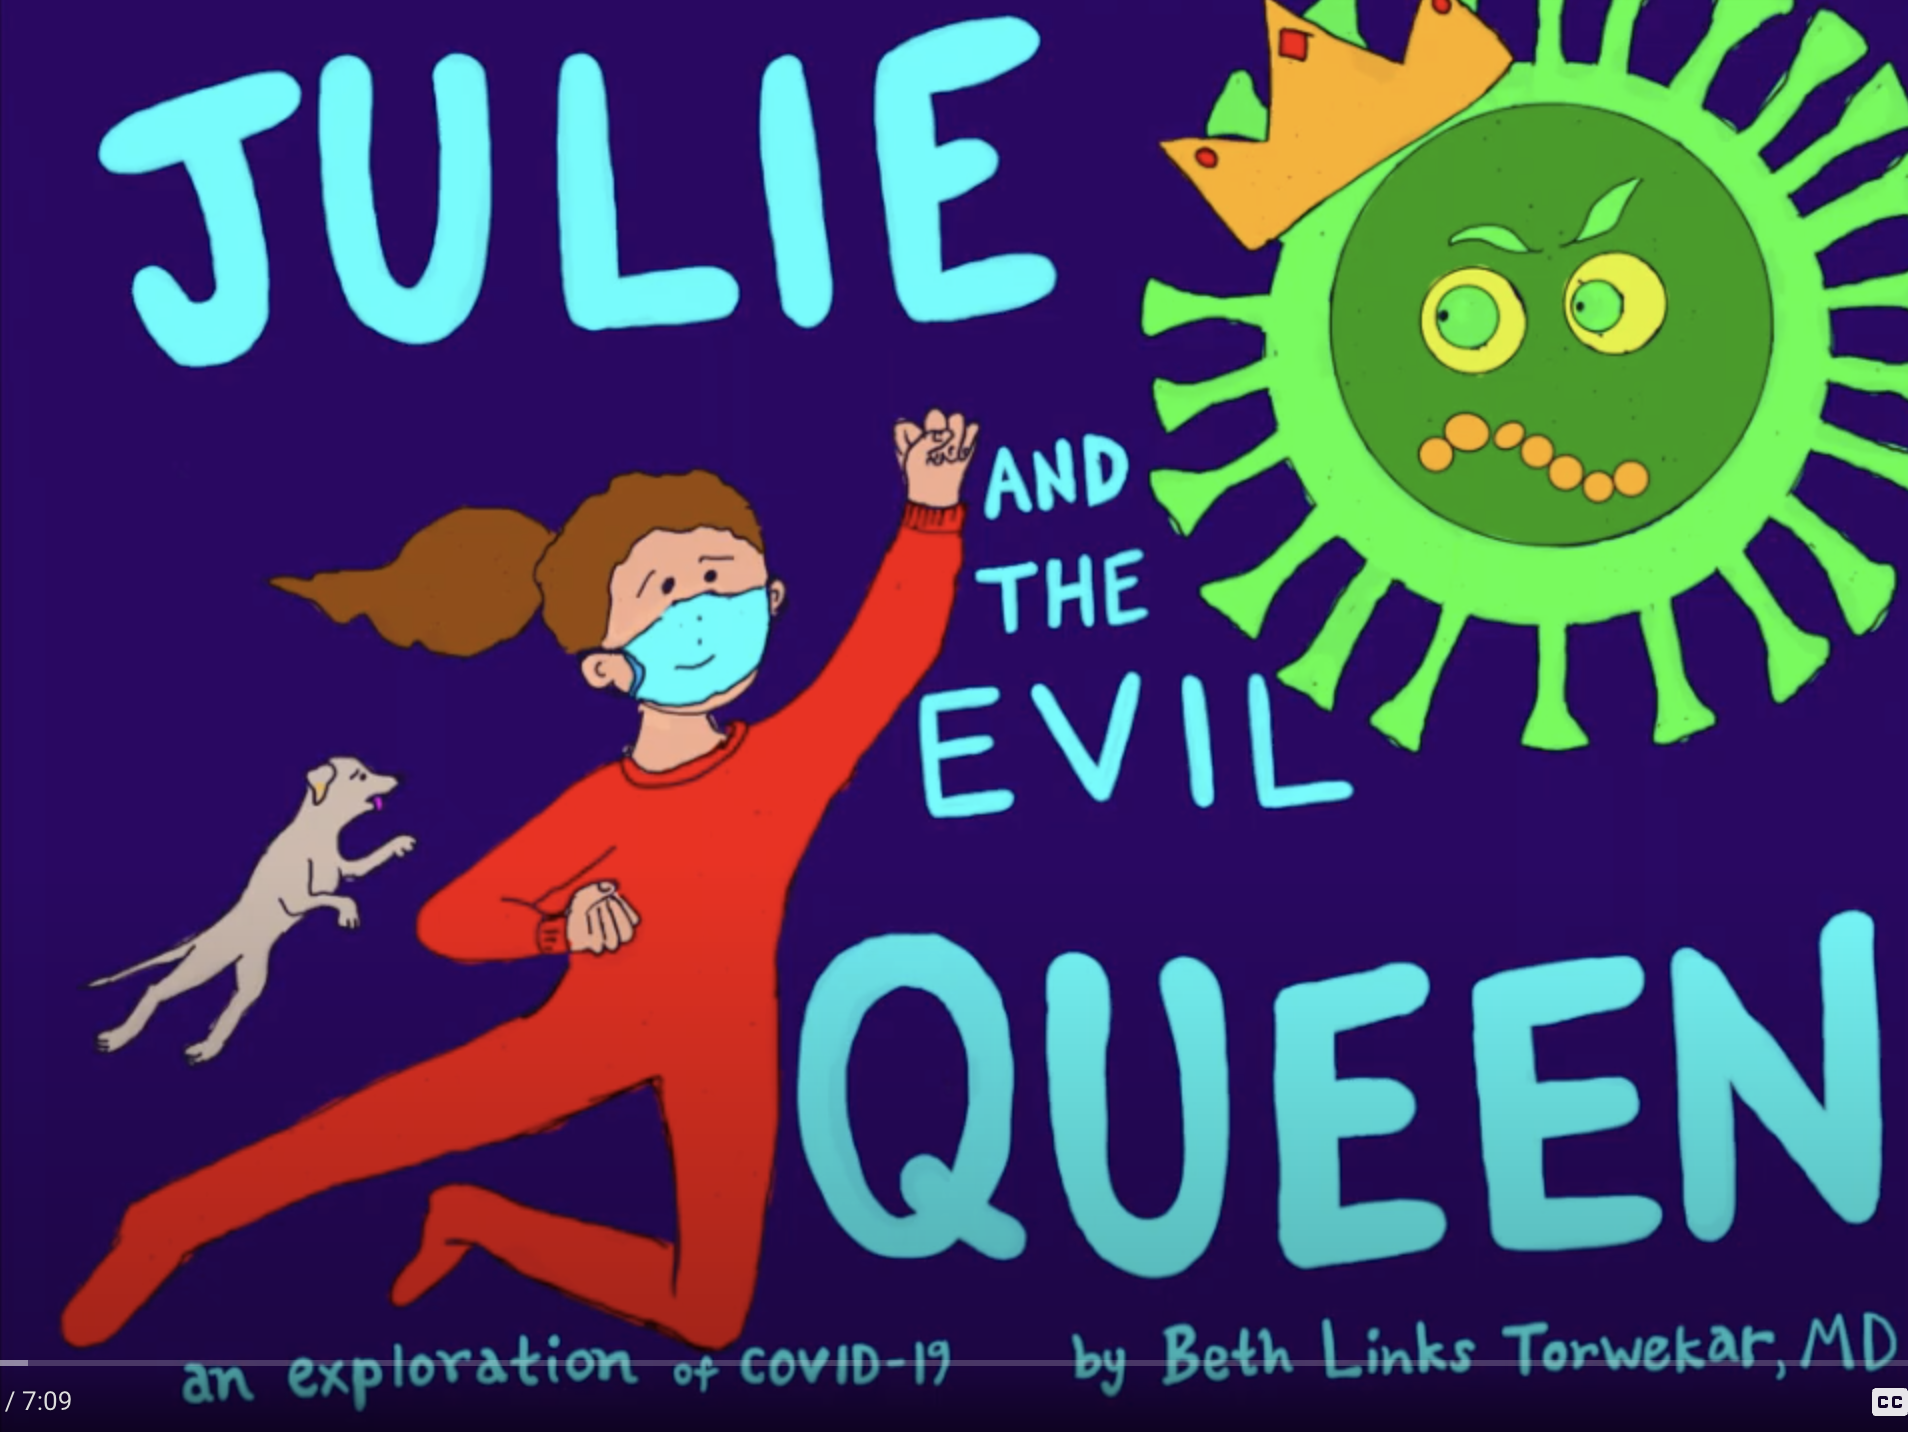 Julie and the Evil Queen: An Exploration of COVID-19